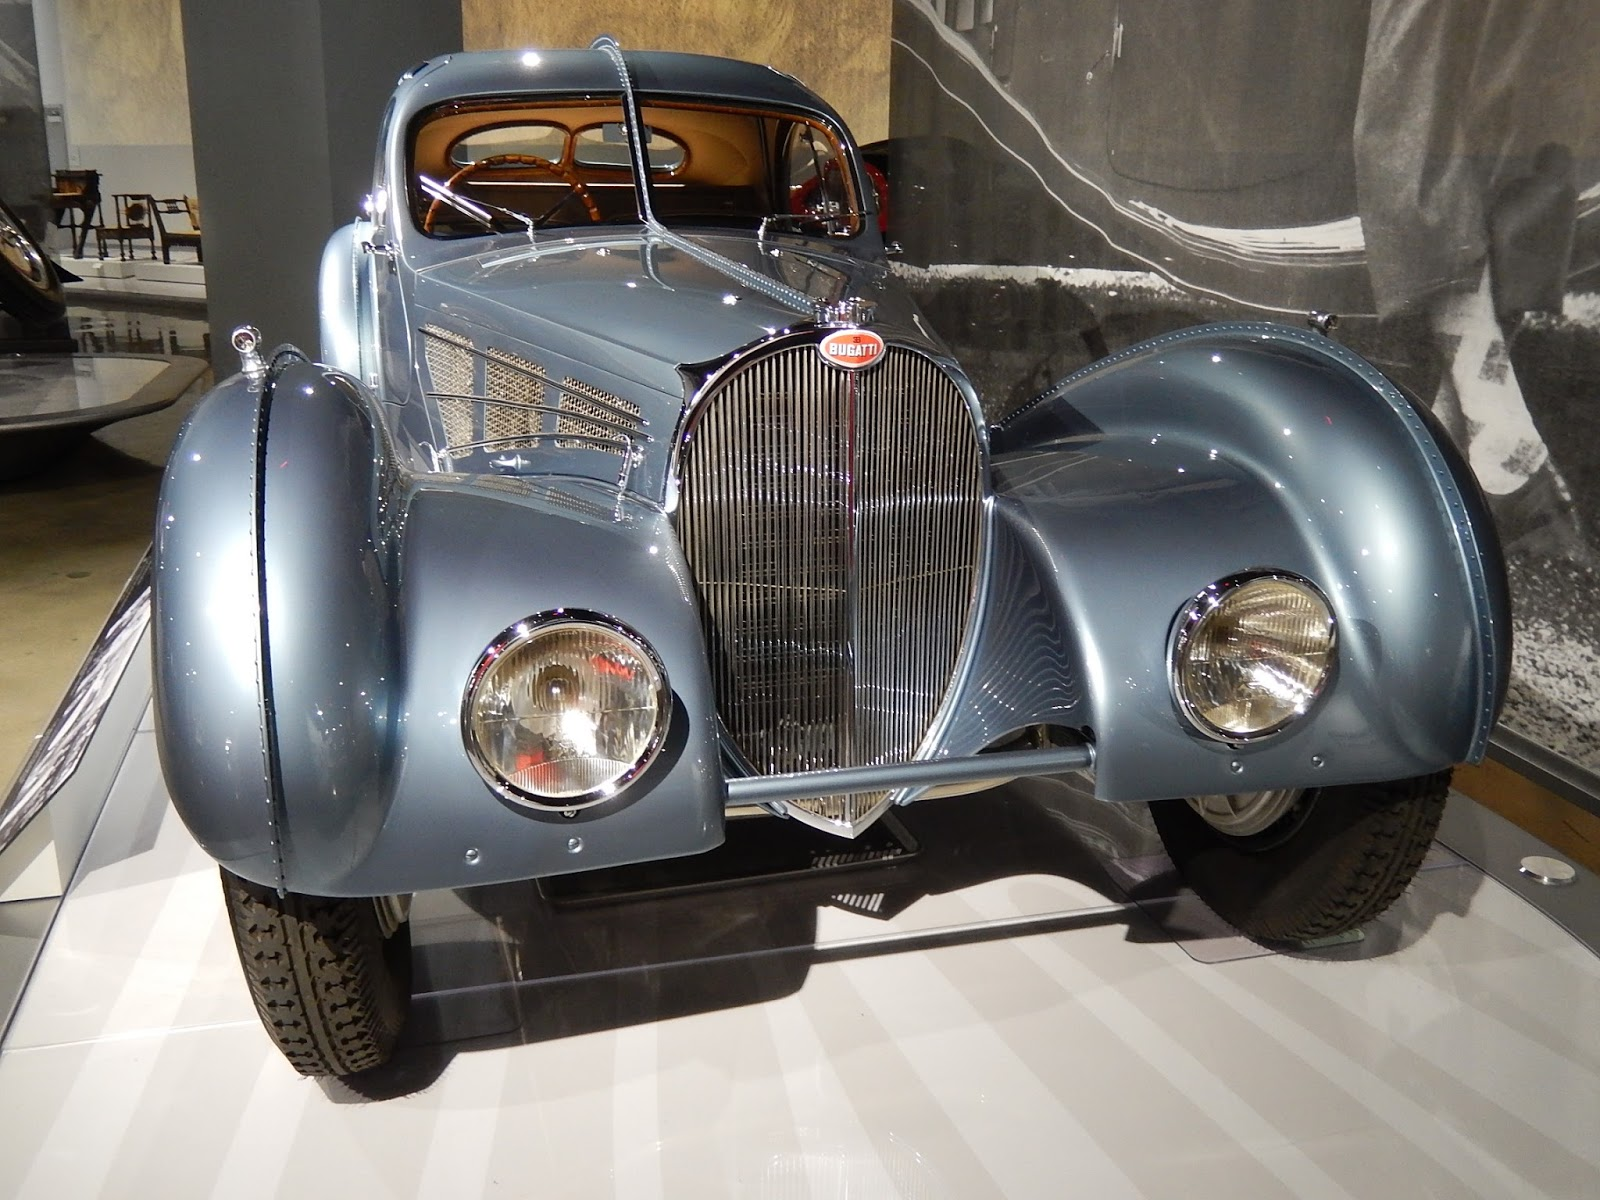 At Least One Atlantic    Perhaps Ralphu0027s    Had A Front Bumper For A While.  The Grille Is Not A Classic Bugatti Horseshoe: Other Type 57s Also Featured  The ...